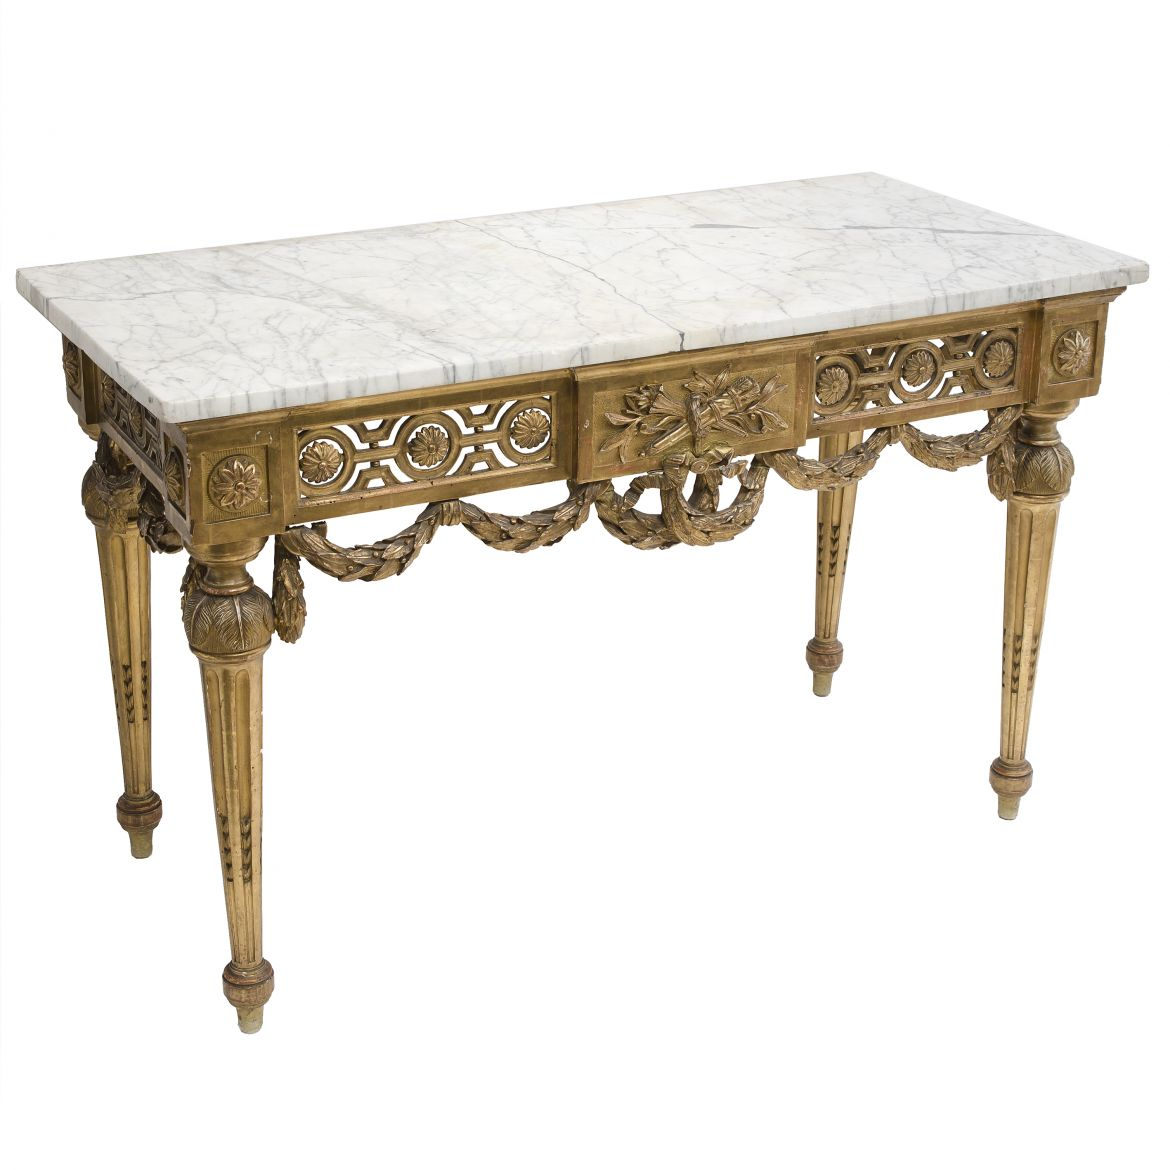 French Louis XVI Giltwood Console